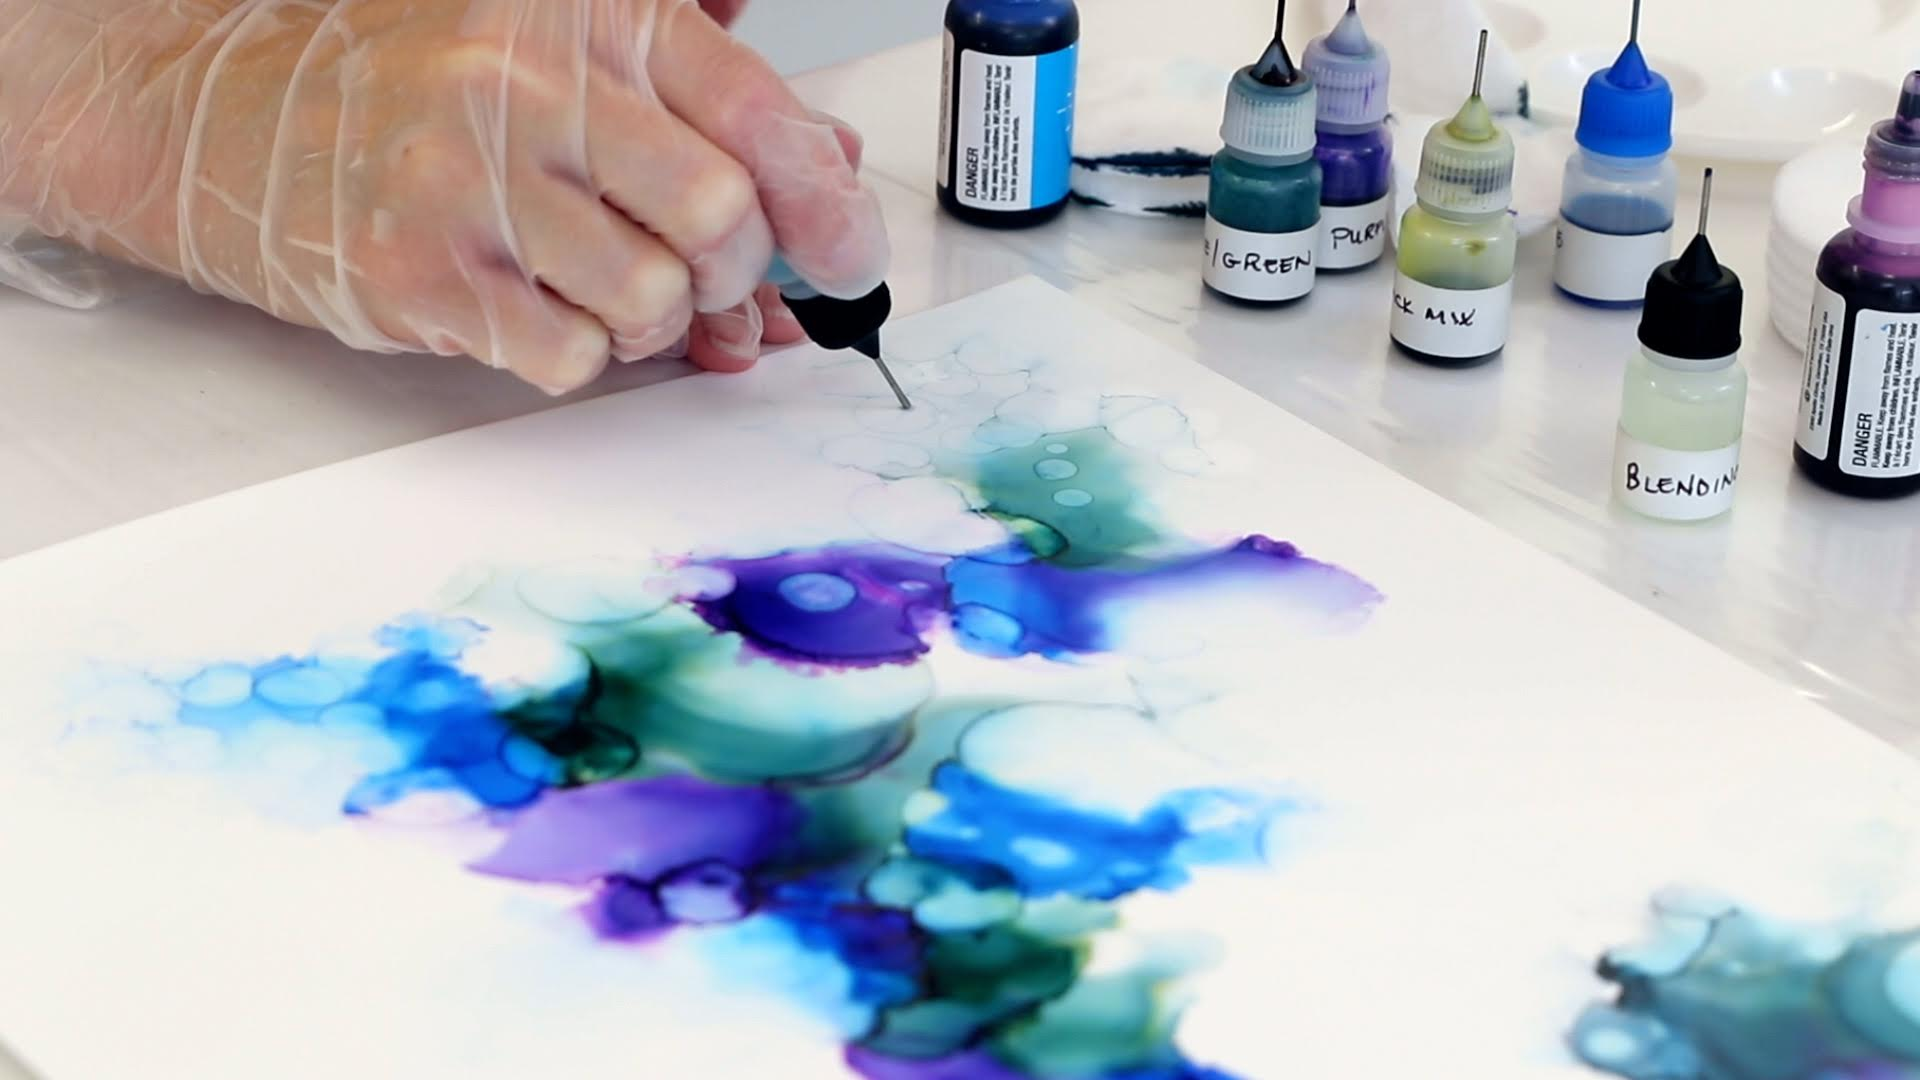 soften edges of alcohol ink with isopropyl alcohol